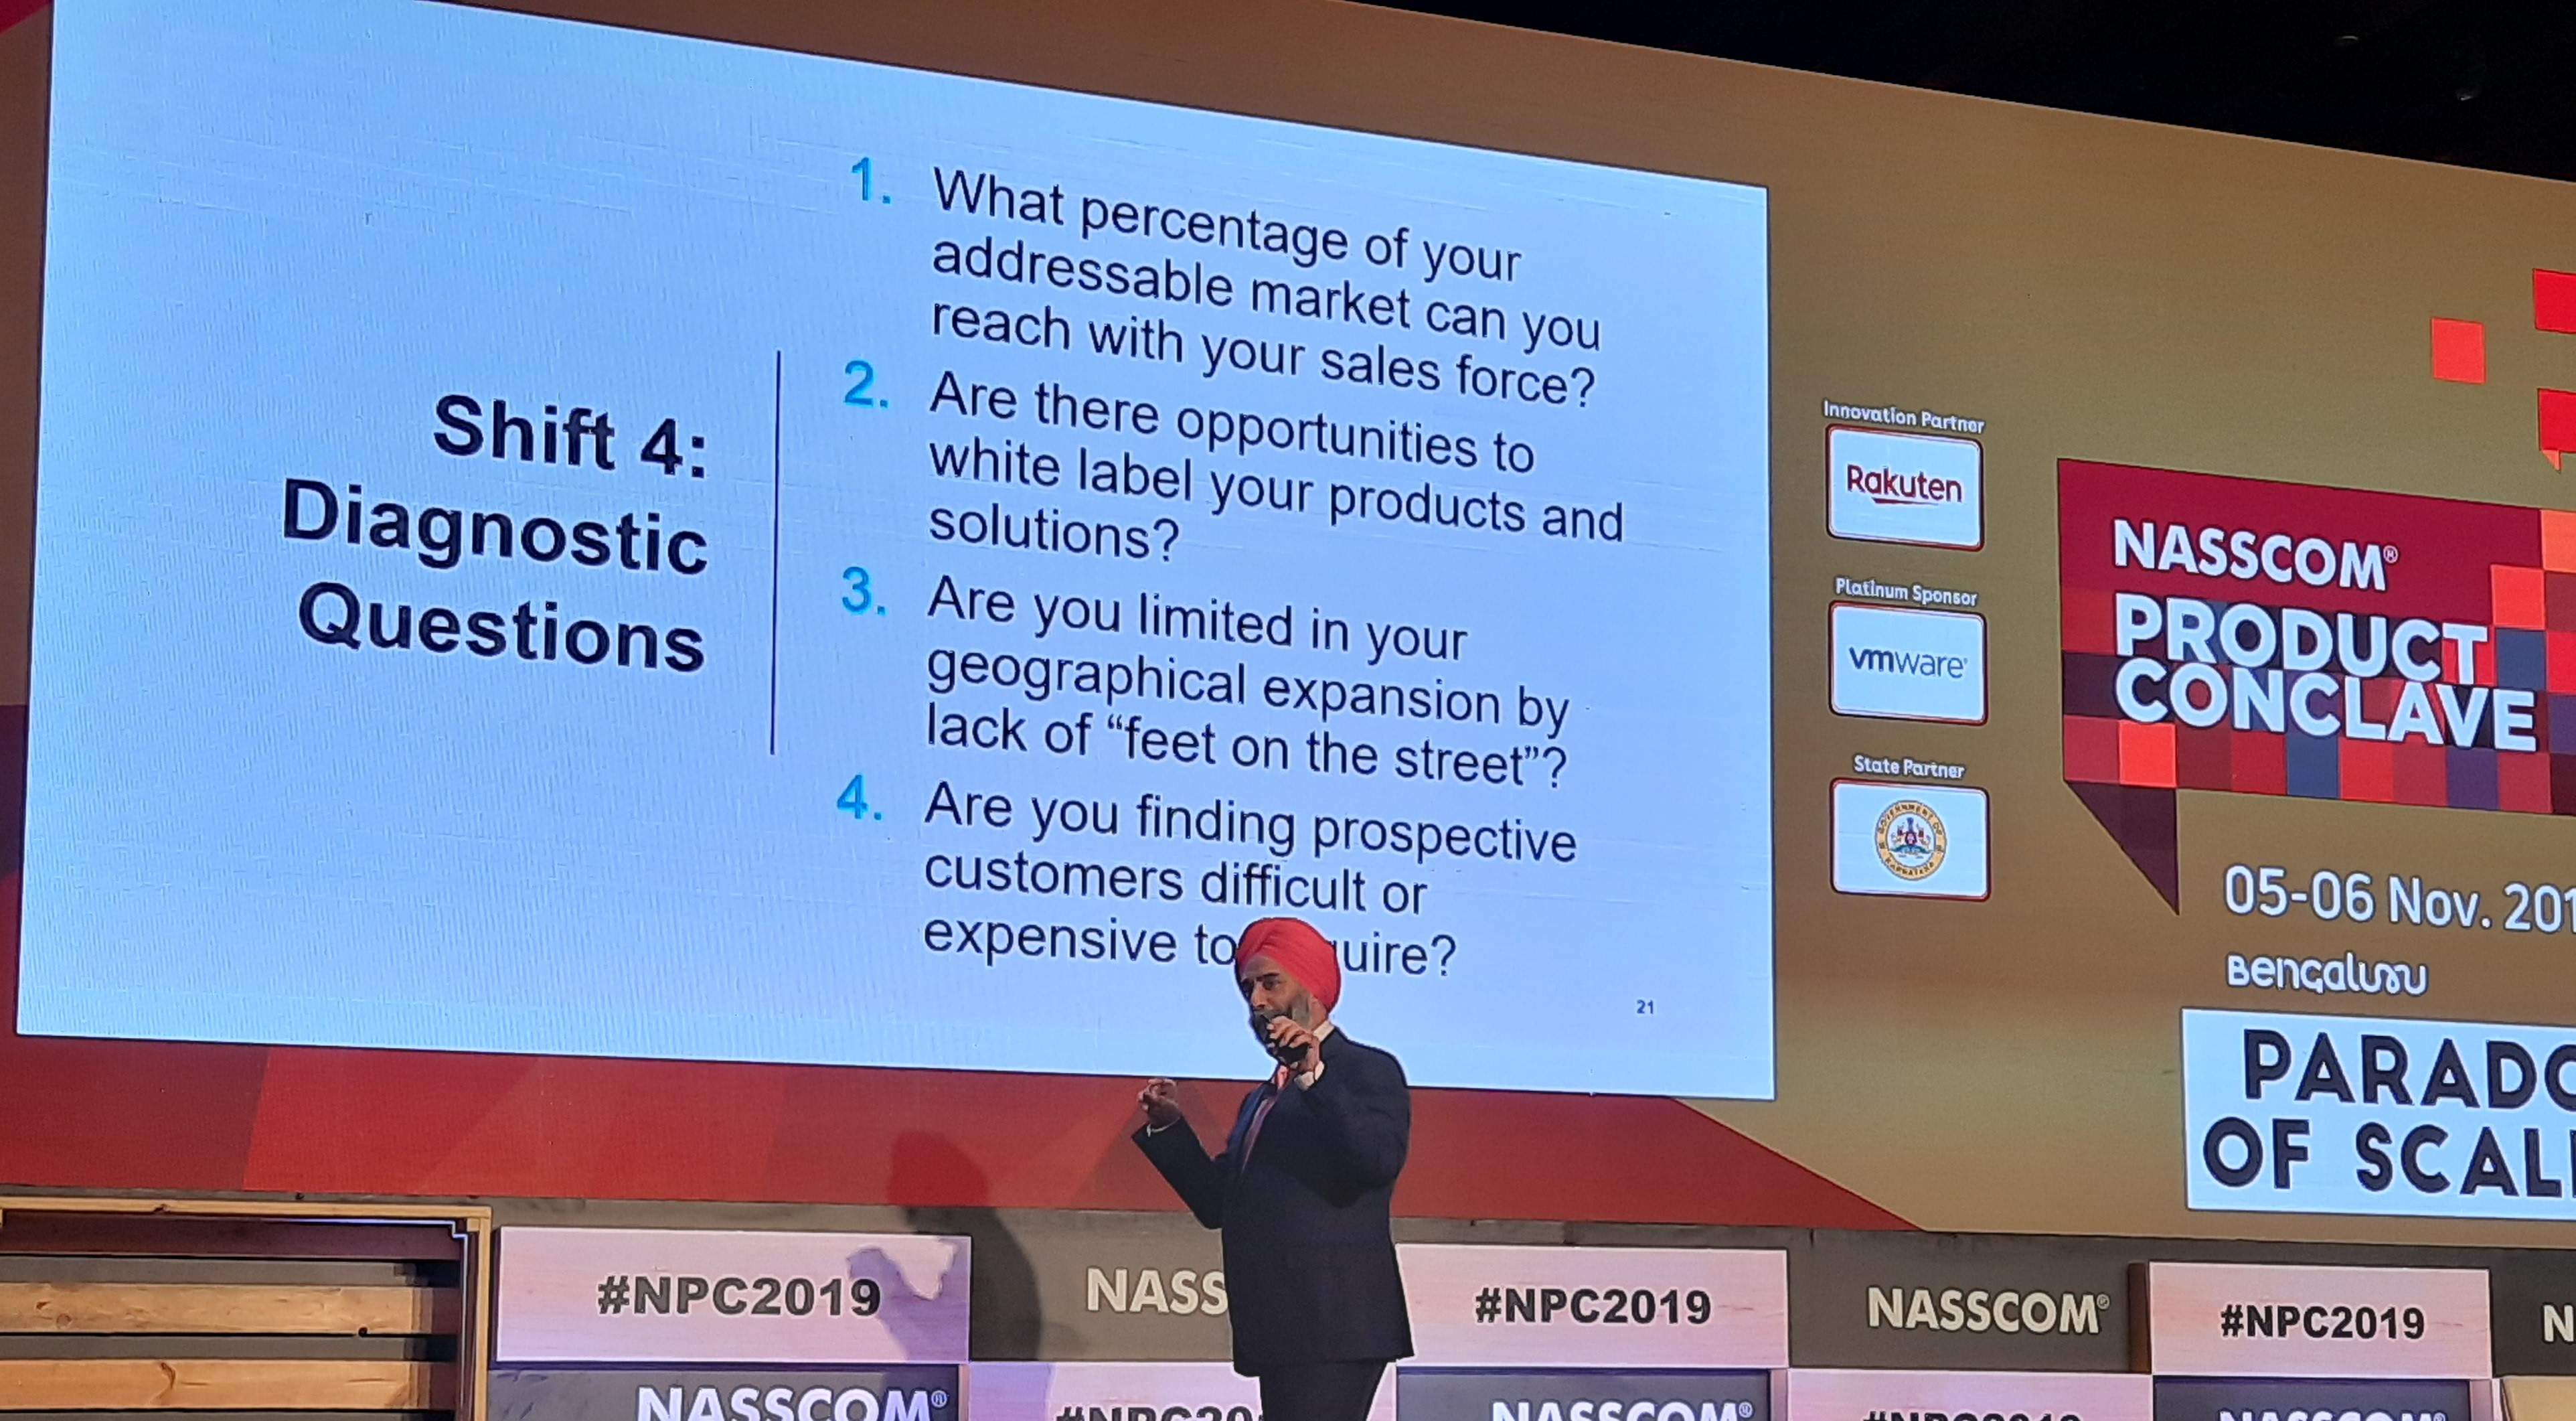 Paradox of Scaling (NPC2019)